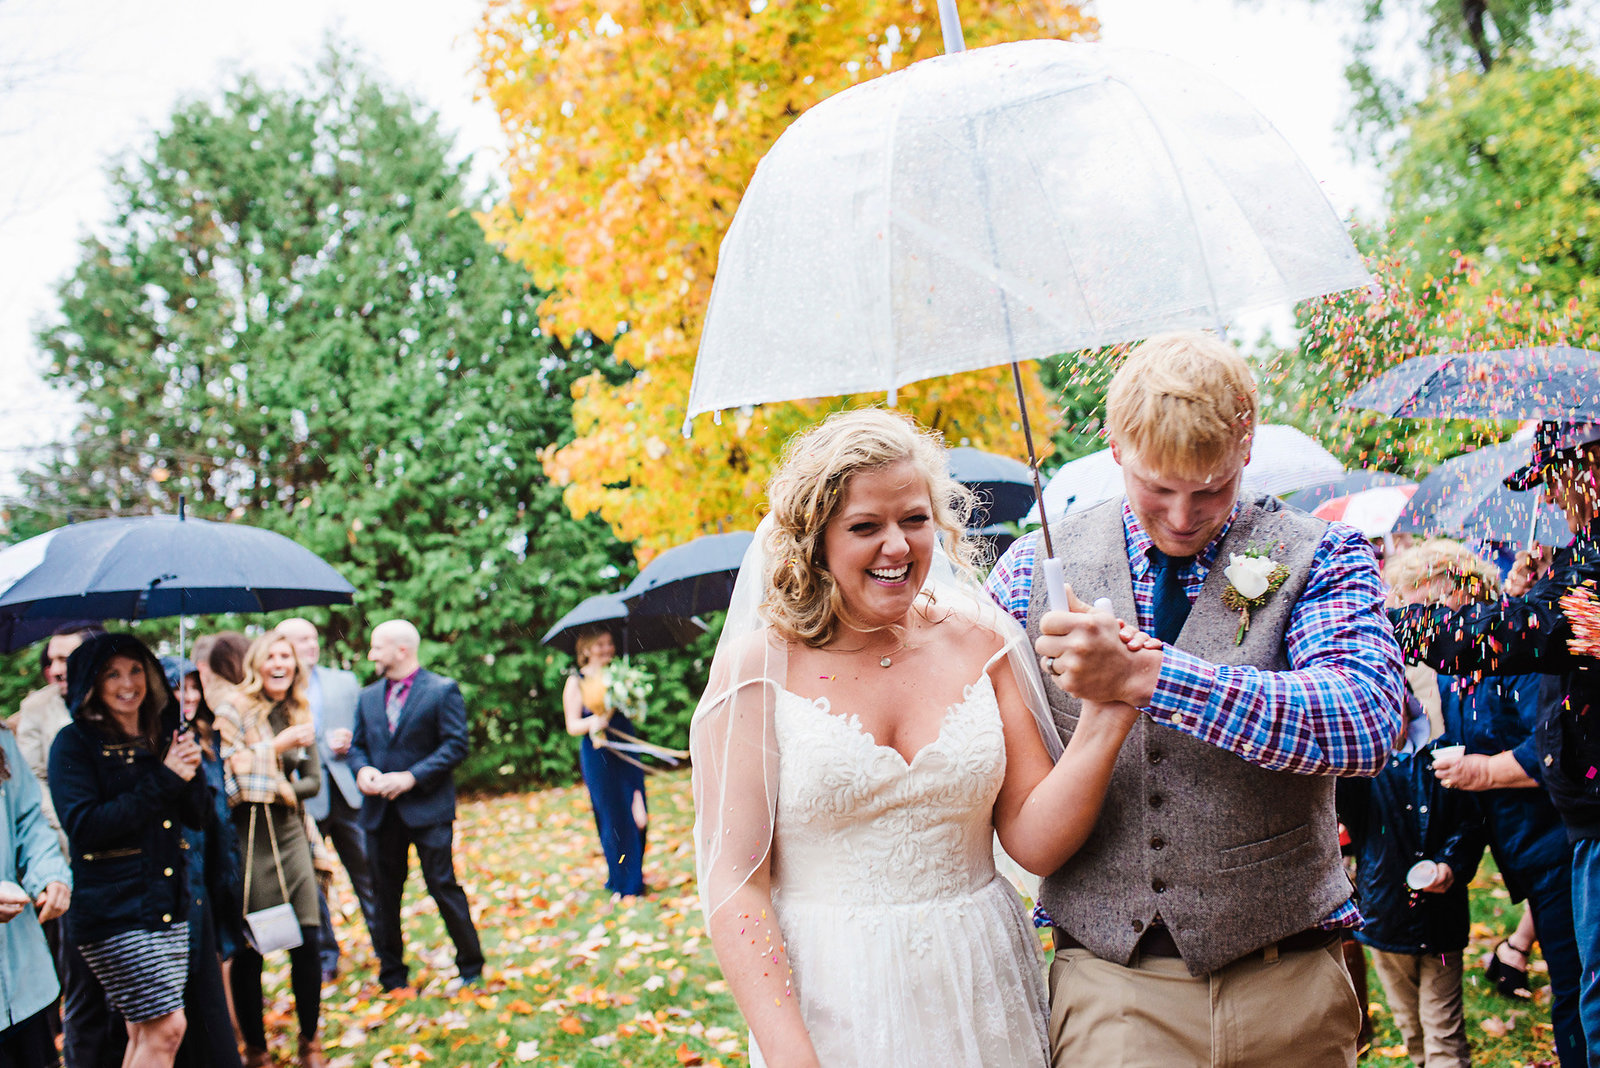 rainbow sprinkles confetti, rainy wedding, clear umbrella, bride and groom exit, fall wedding in Vermont